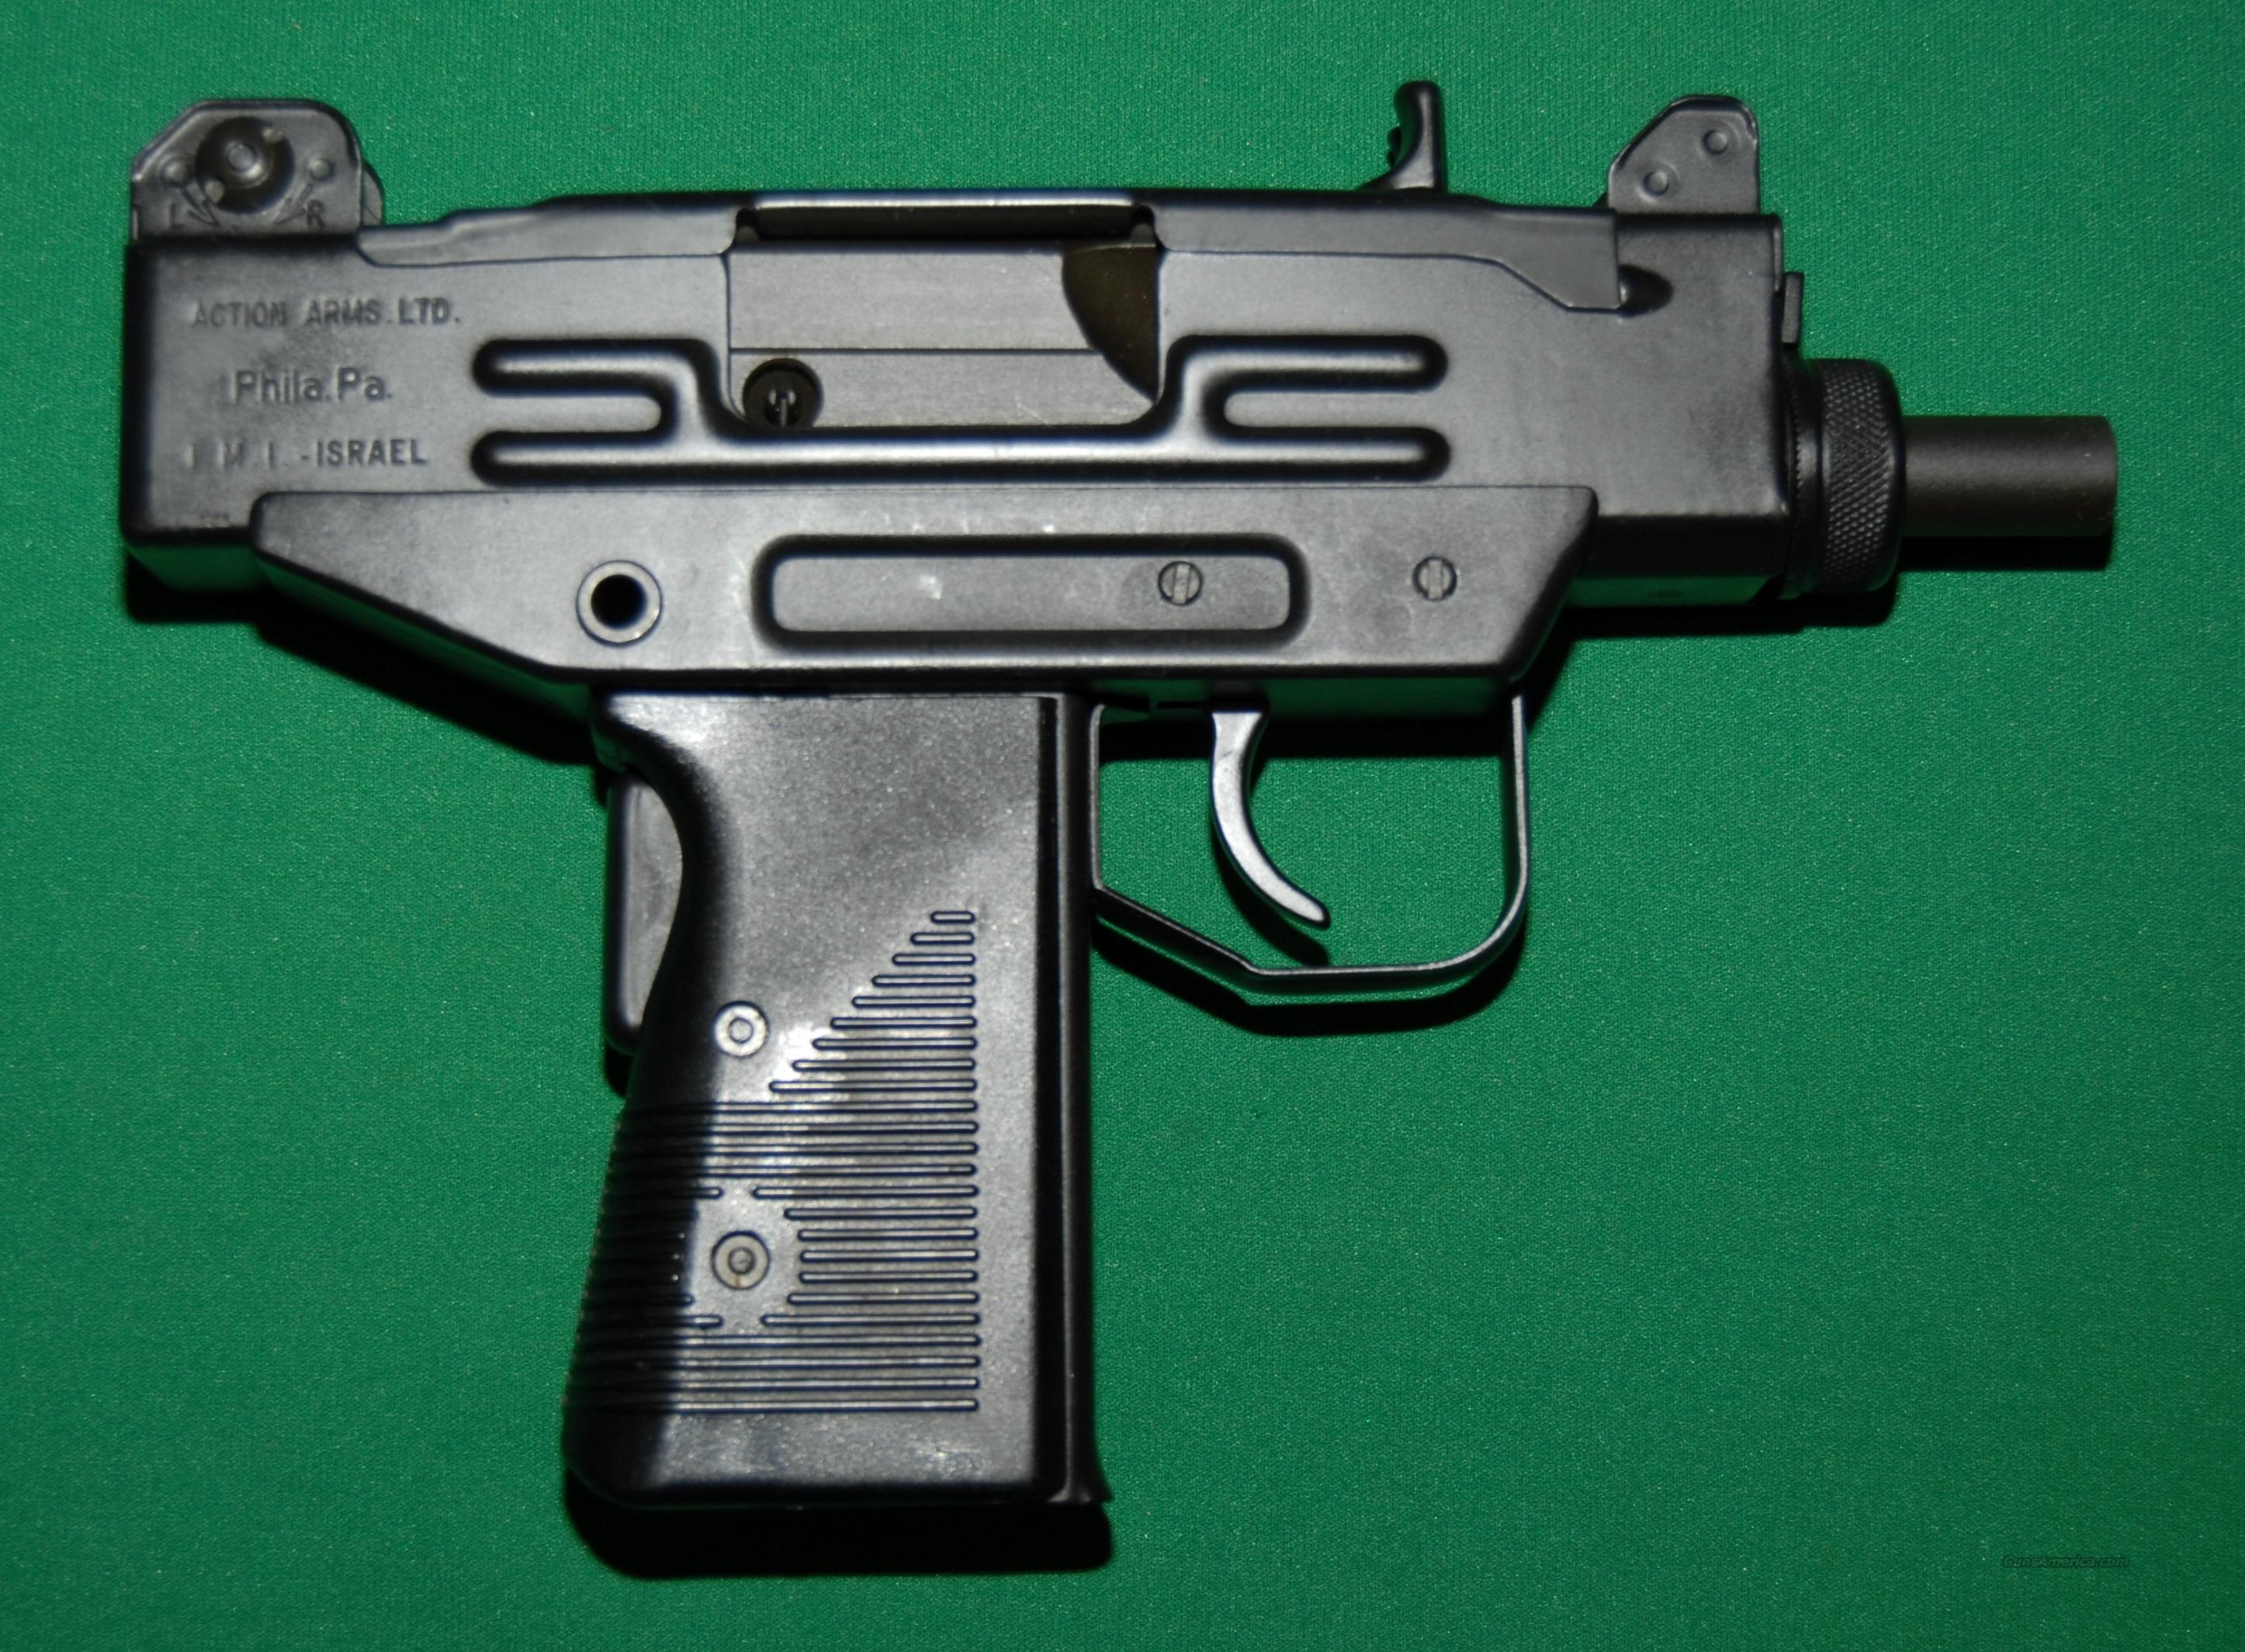 Action Arms Uzi Pistol, Used like New  Guns > Pistols > IMI Pistols